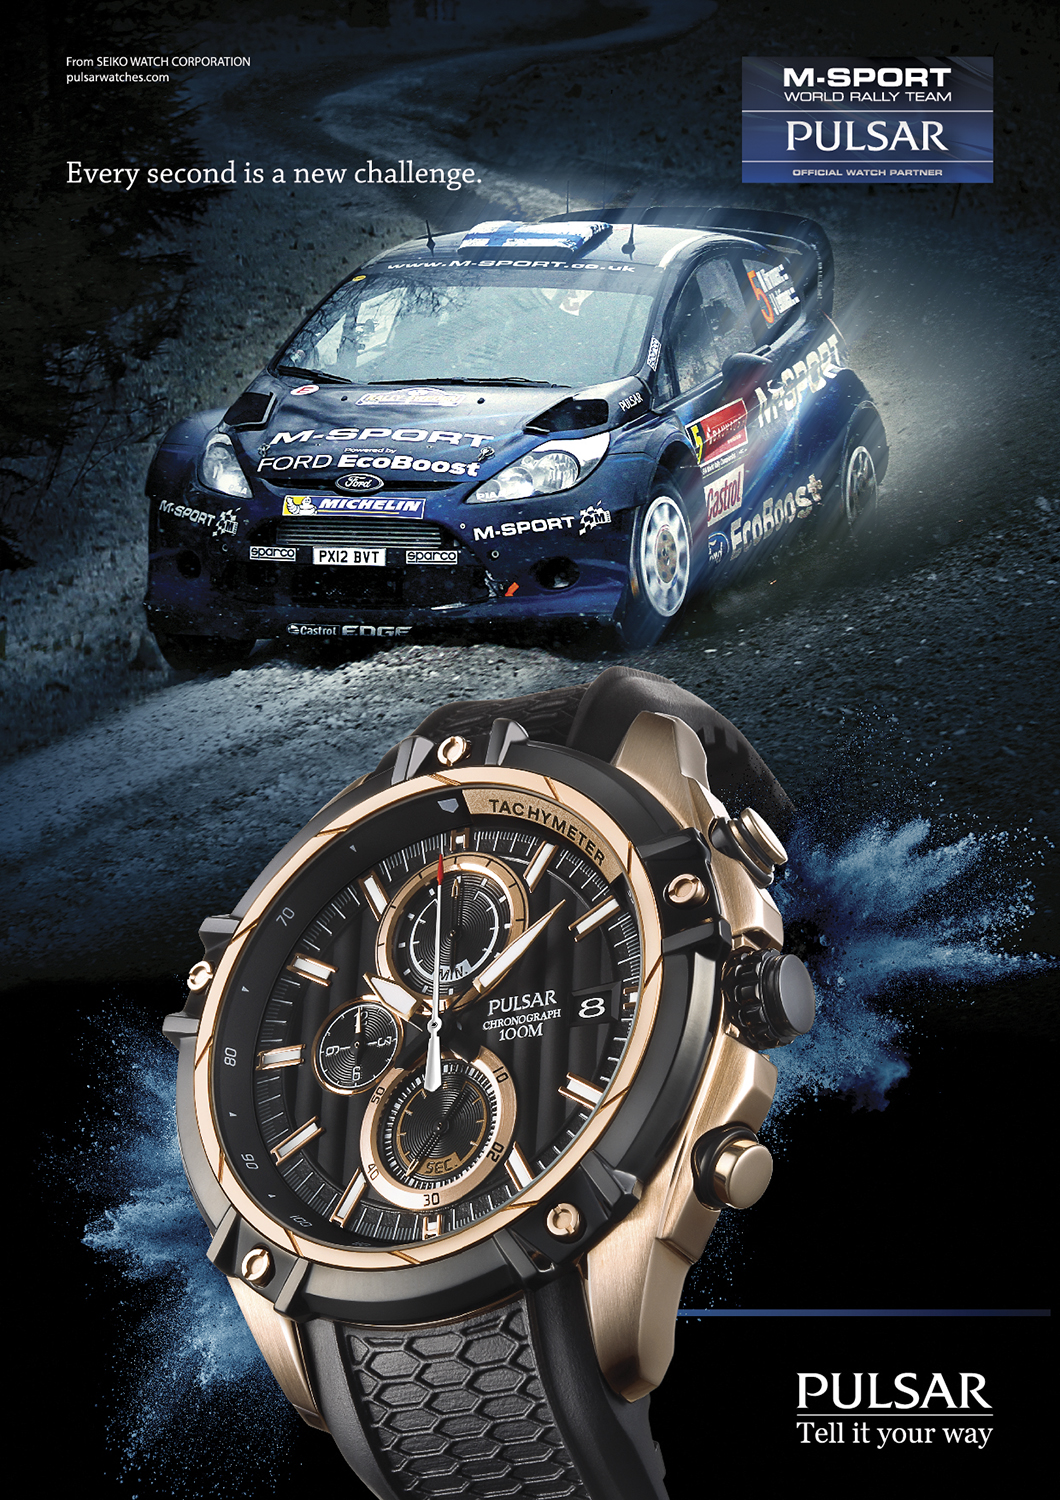 pin f h s watches i pinterest n auto lace o a geckota racing